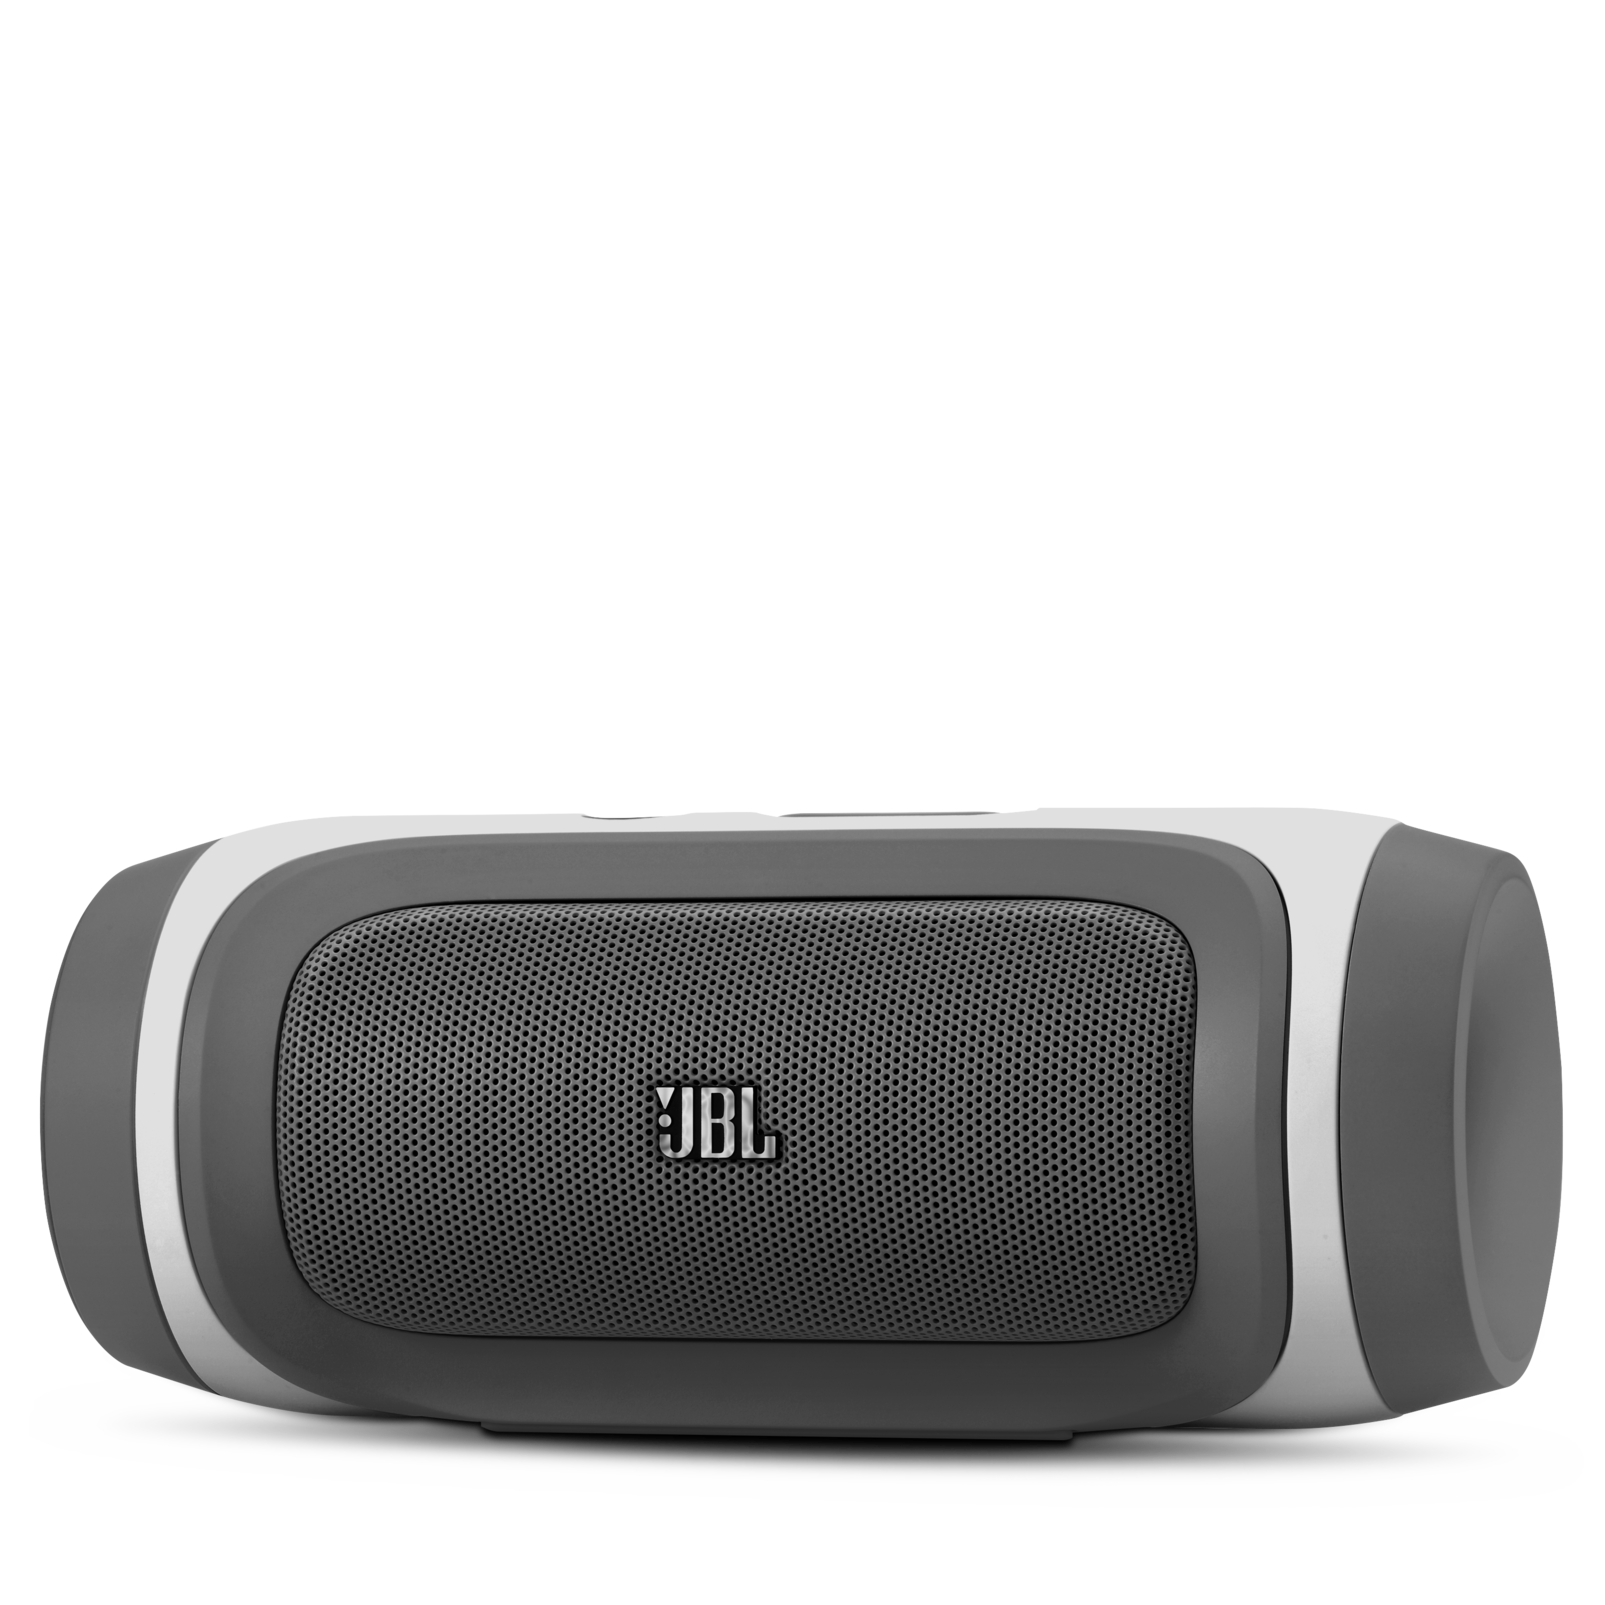 Portable Wireless Bluetooth Speaker With USB Charger